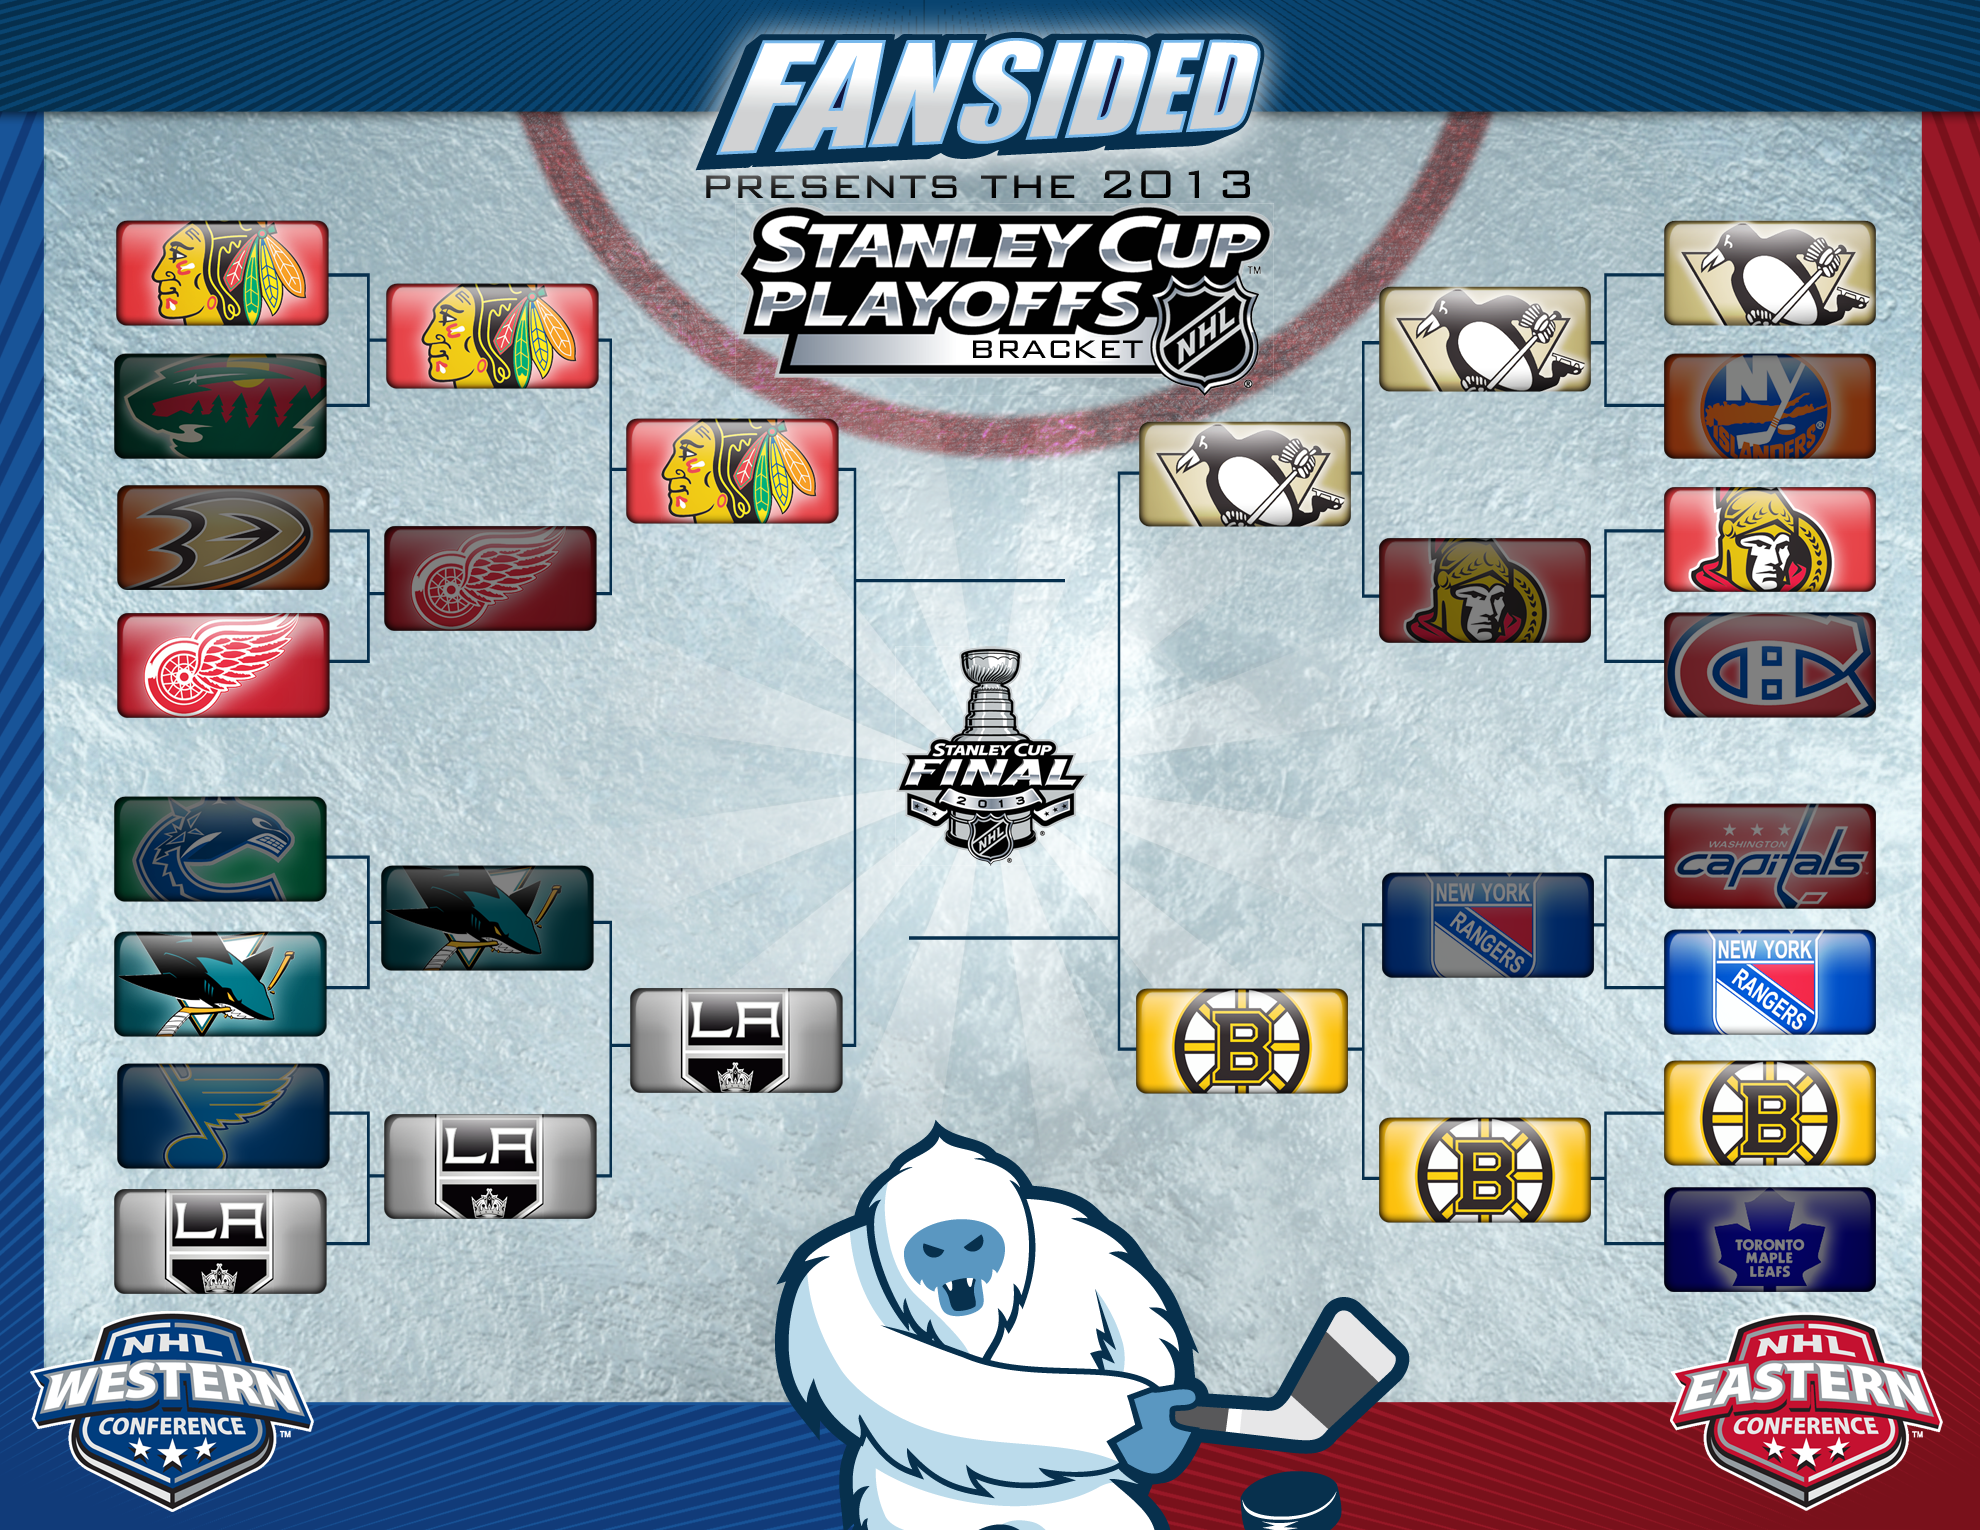 NHL Stanley Cup Playoffs Bracket 2014